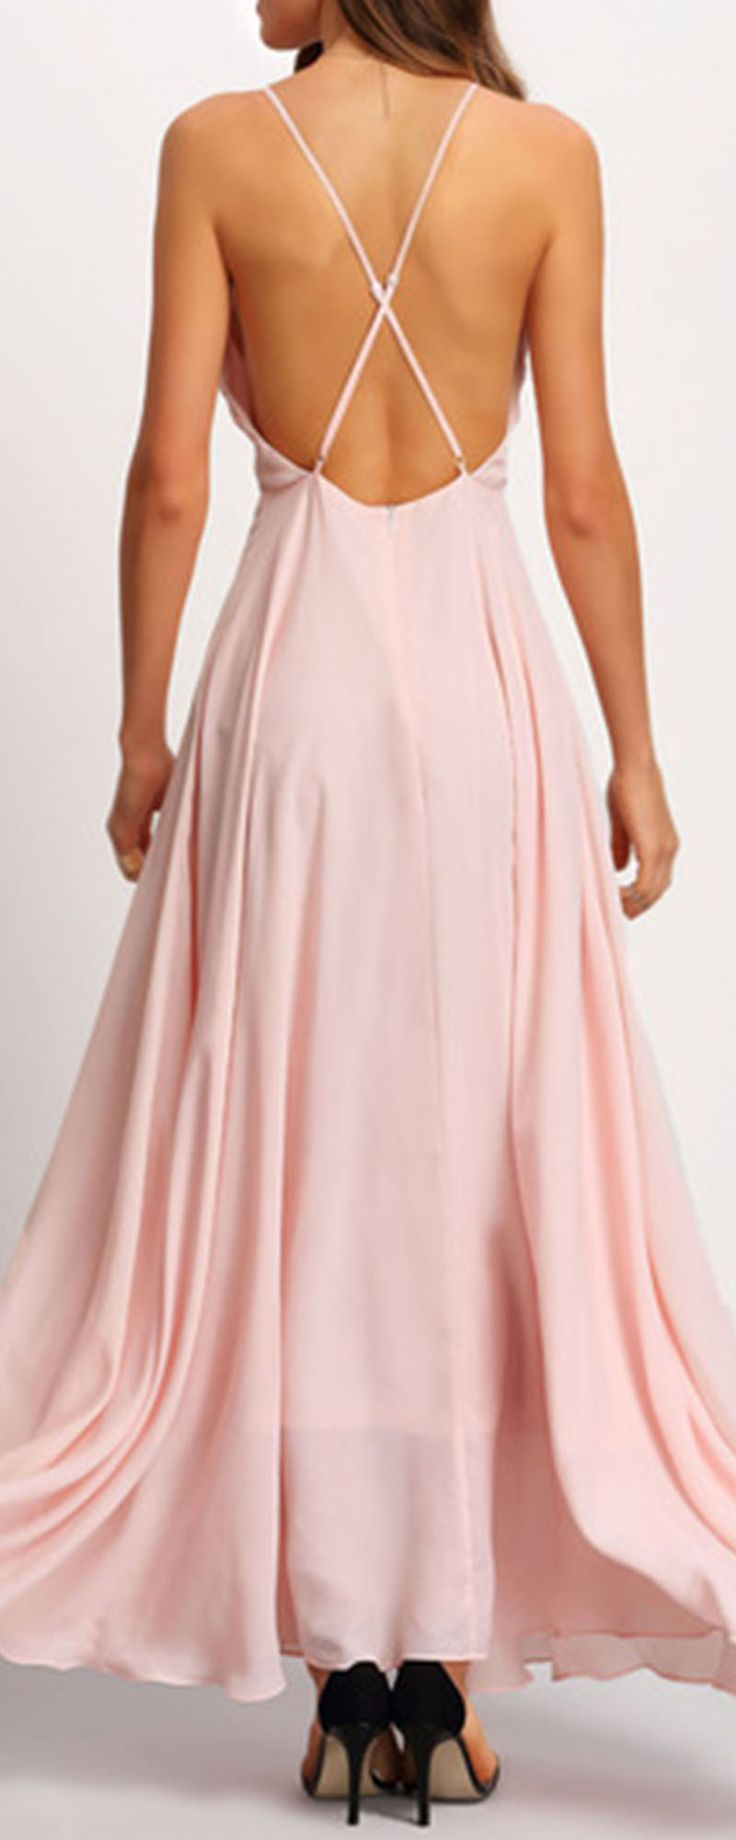 2118 best clothing images on Pinterest   Cute dresses, Formal prom ...